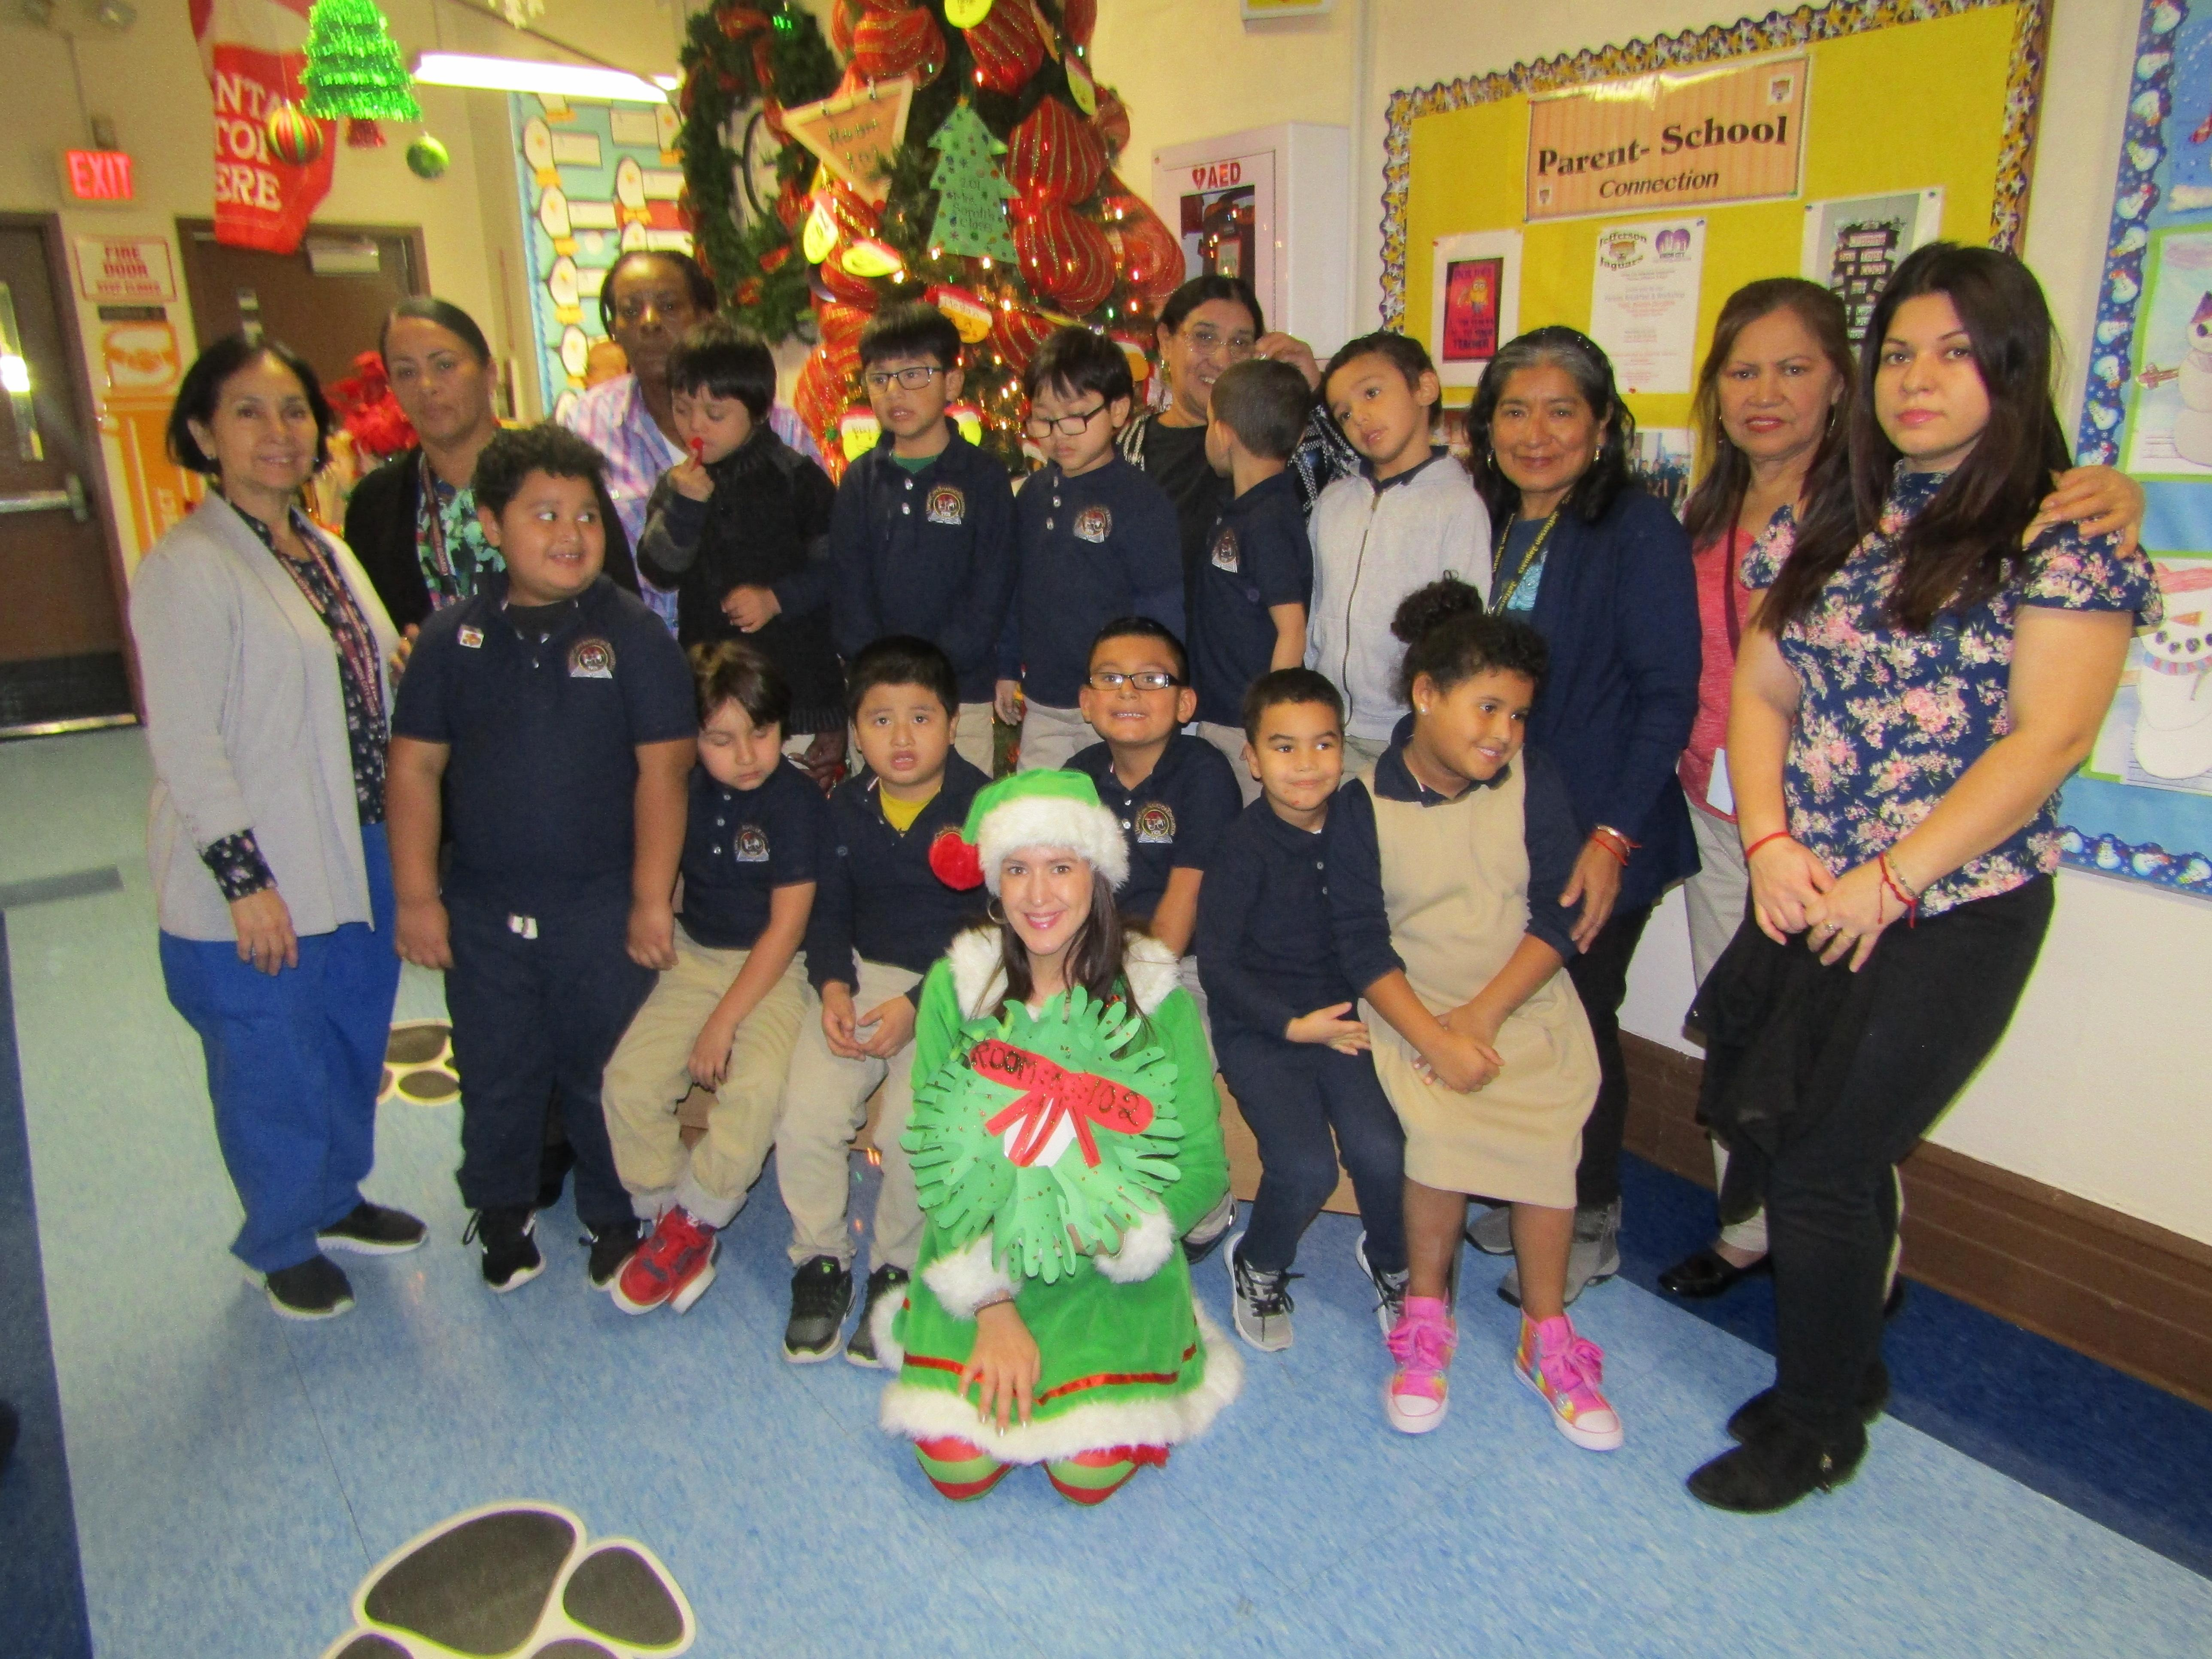 4th grade class with students and aides in front of the christmas tree